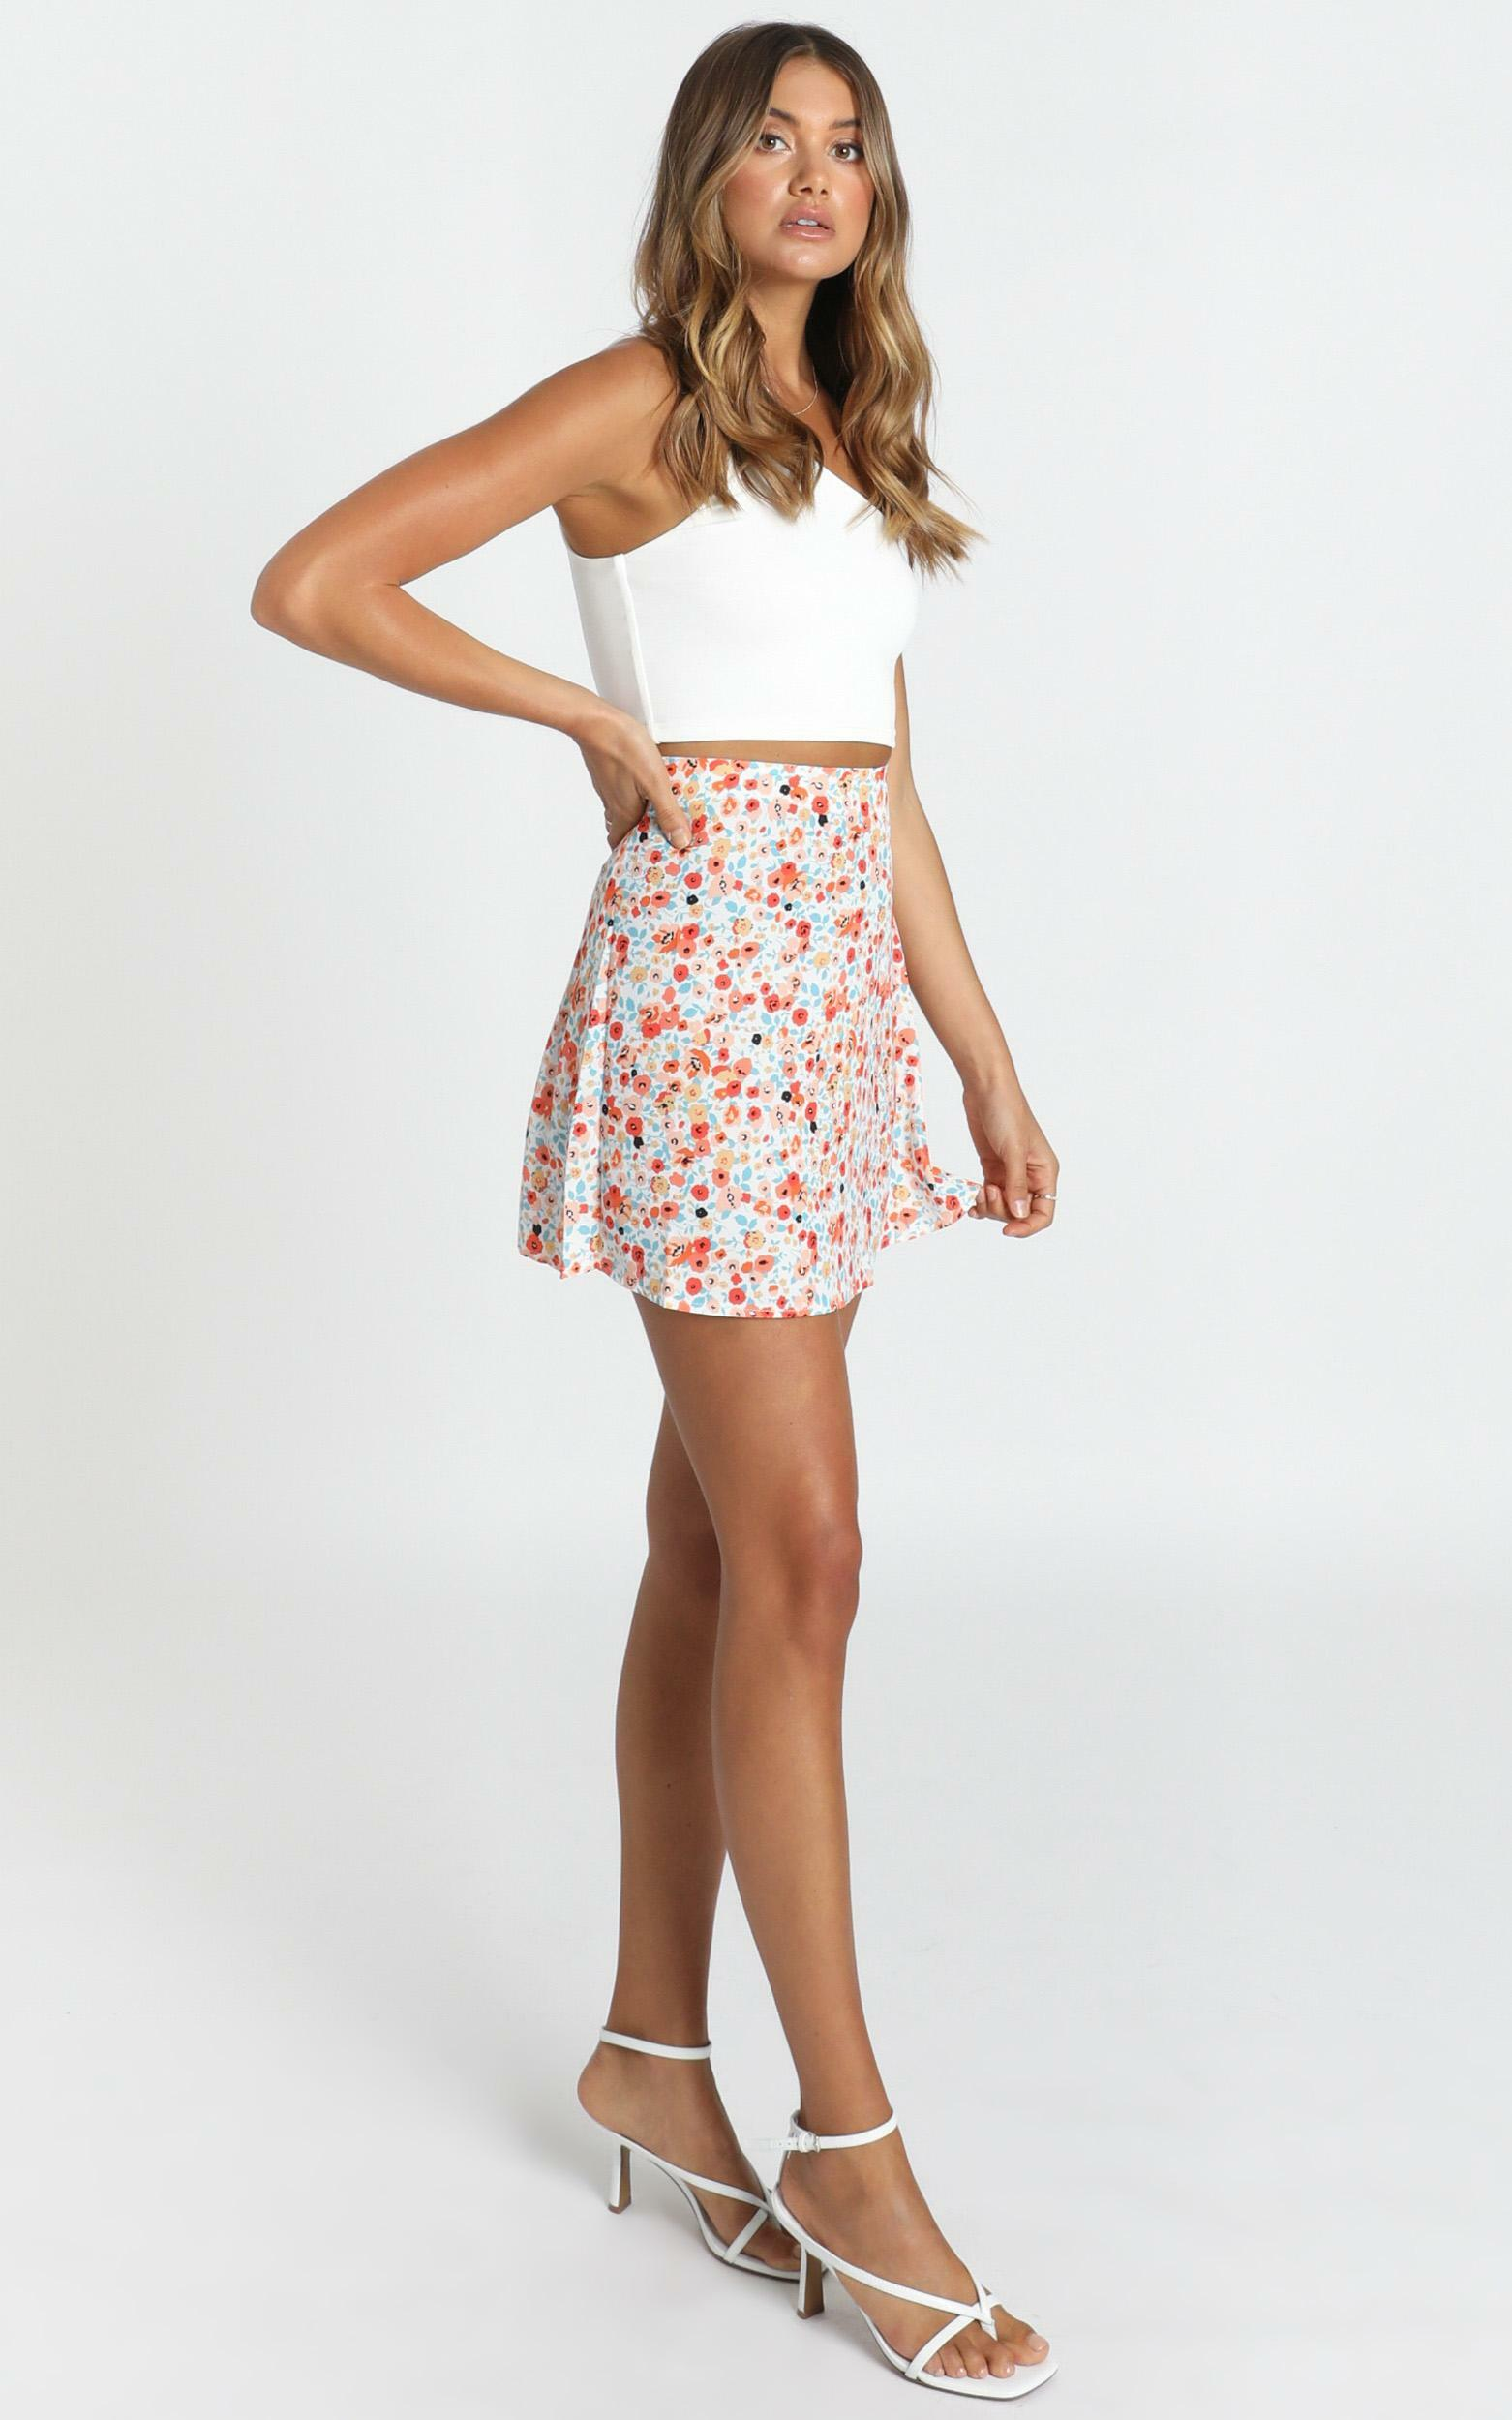 Running Away skirt in multi floral - 16 (XXL), White, hi-res image number null